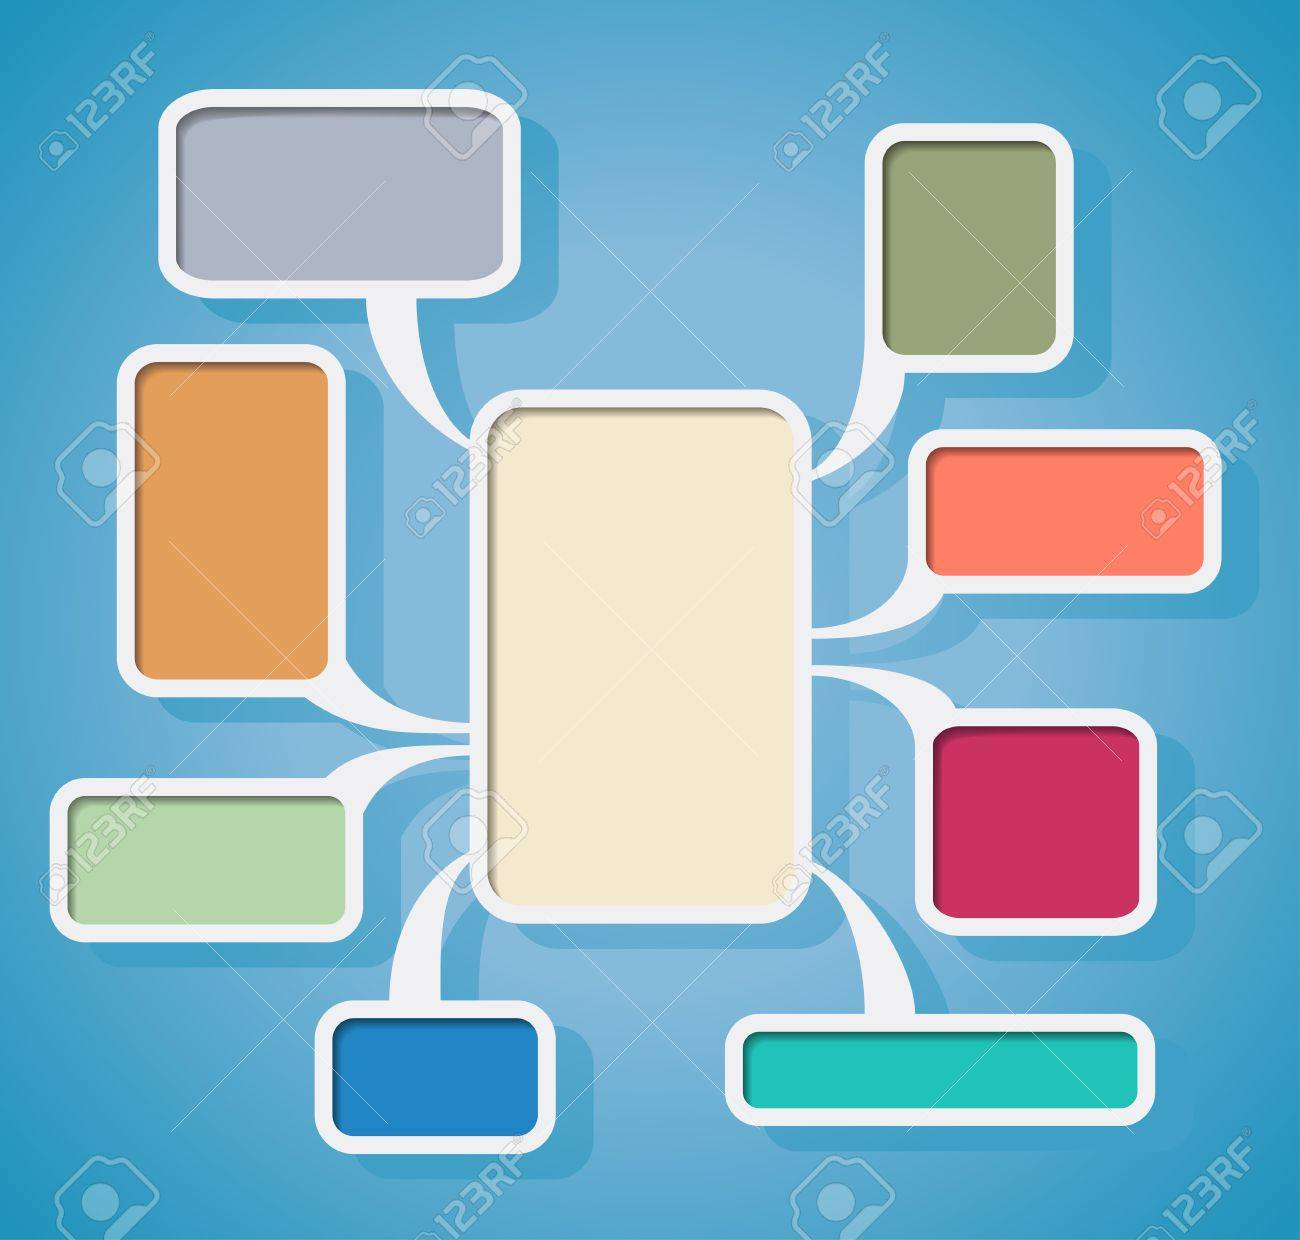 Flowchart with colored clouds is shown in the image. Stock Vector - 18563310